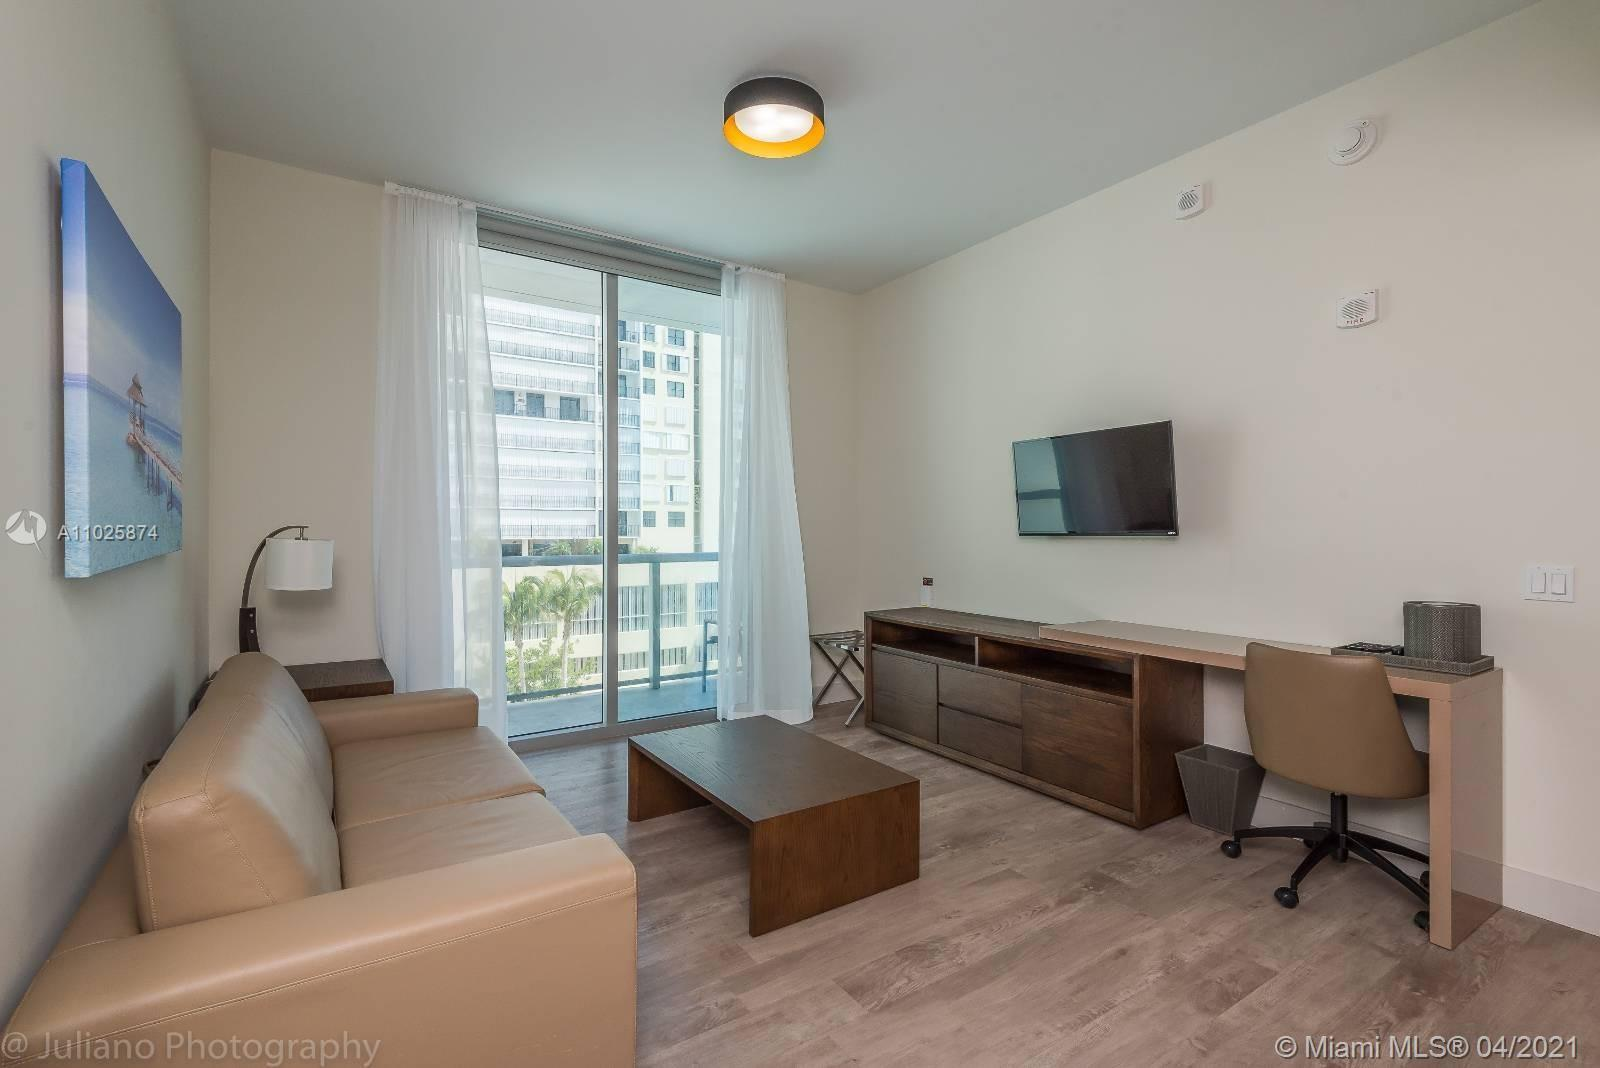 Beautiful condo-hotel unit, excellent investment with no rental restrictions, completely furnished w